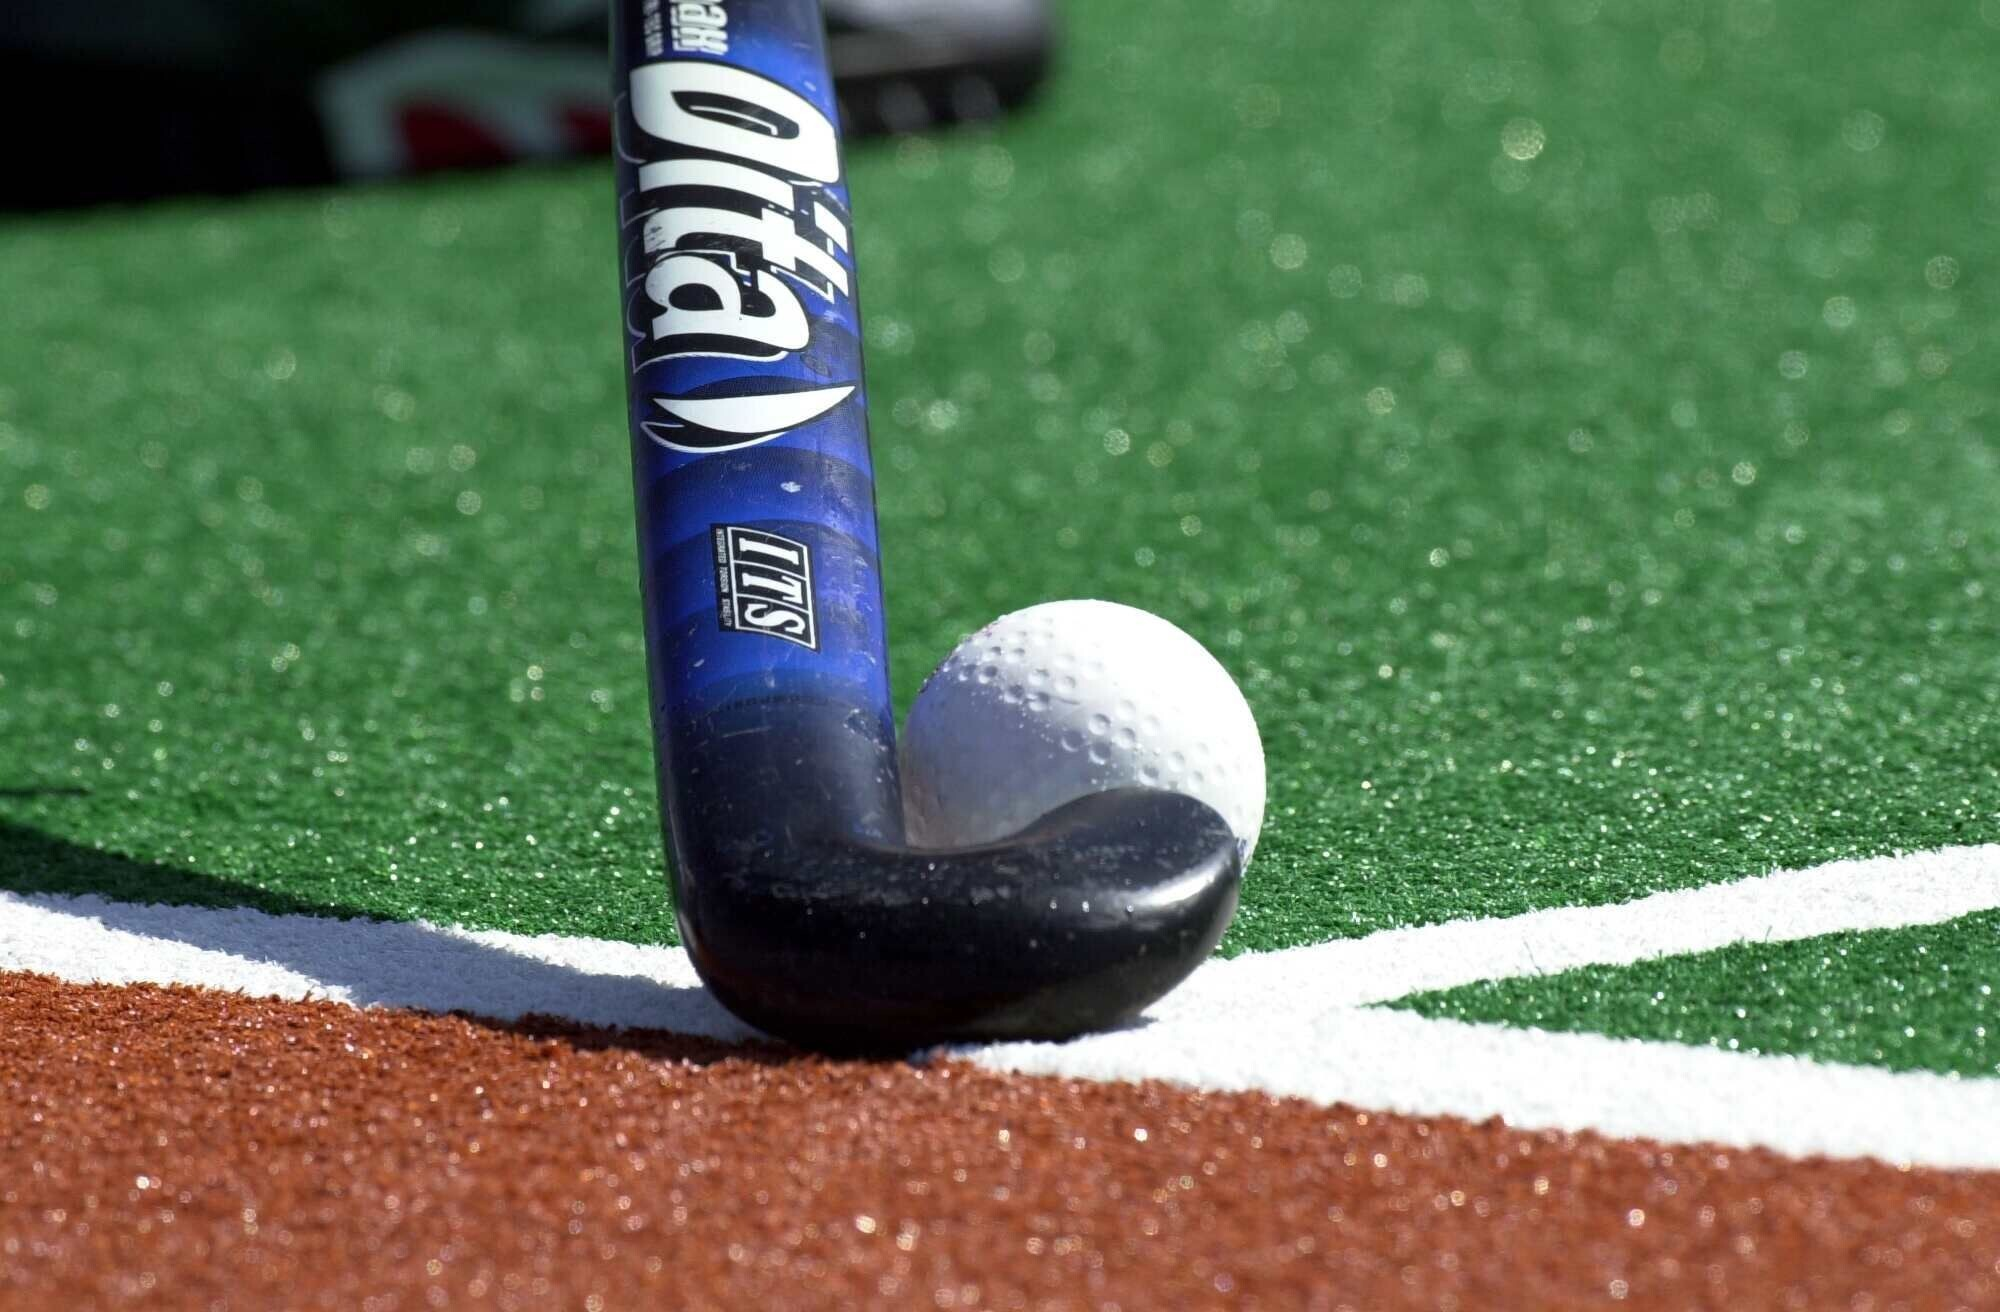 Sports Wallpaper For Android Free Download: Hockey Stick And Ball